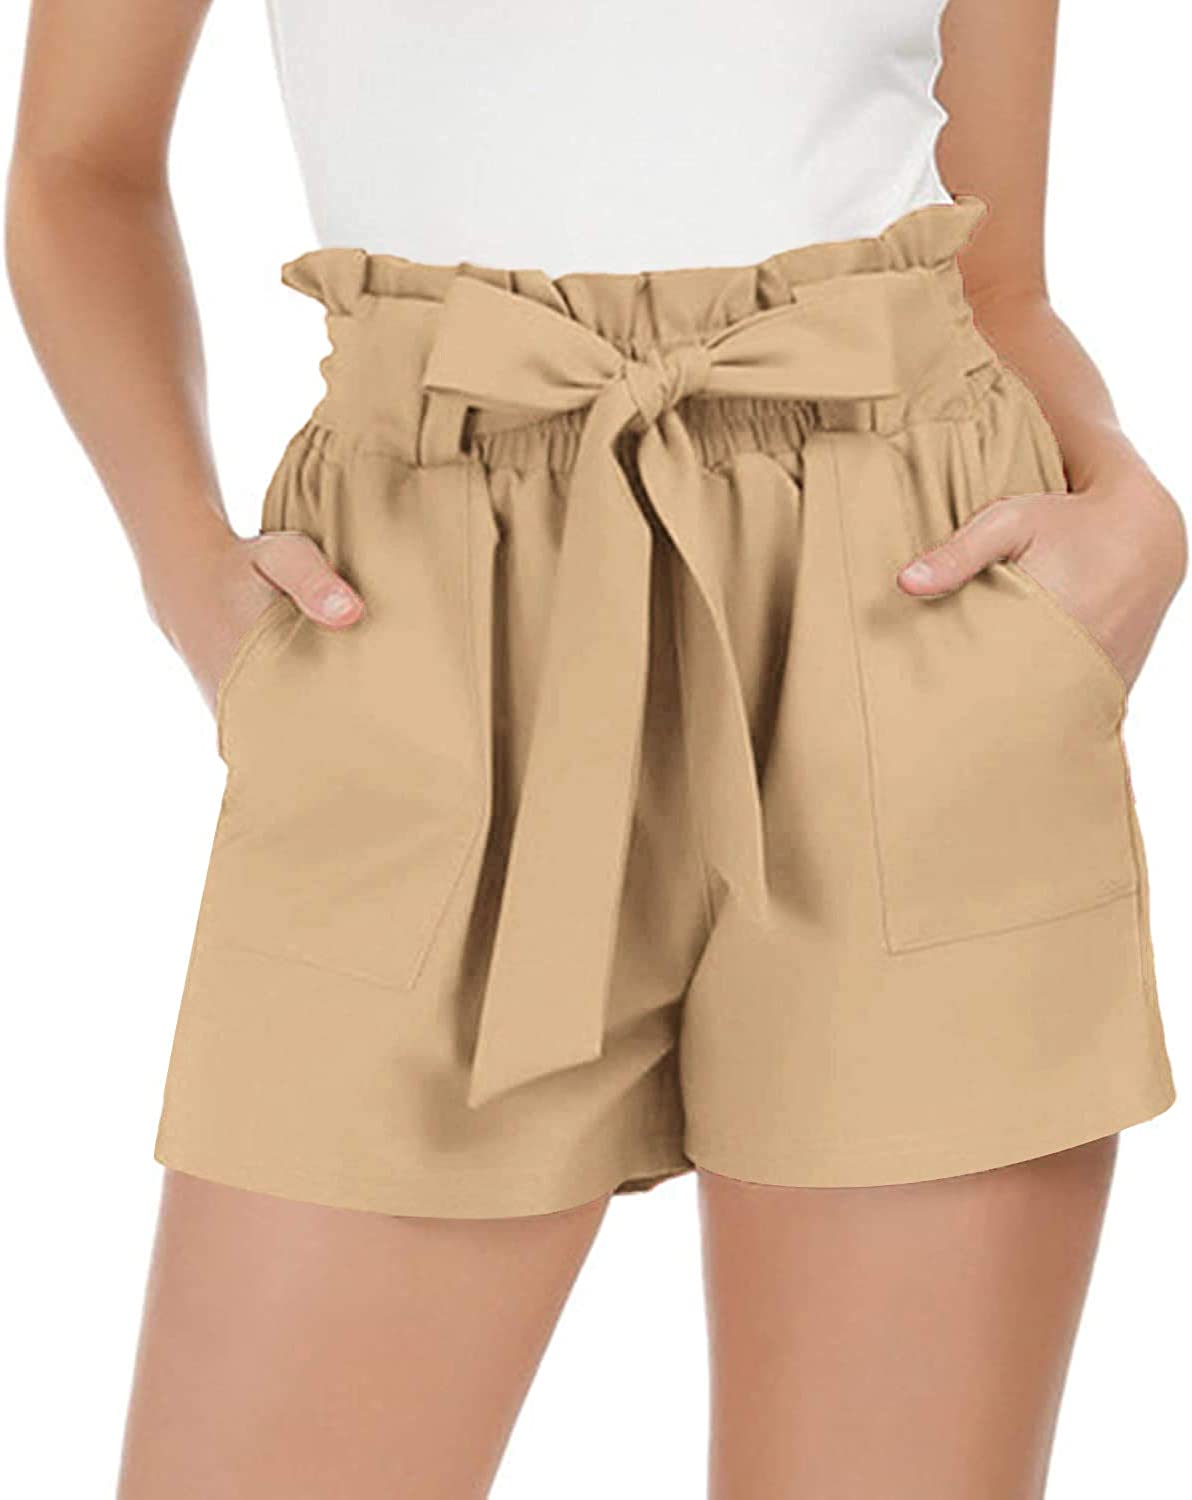 SoTeer Womens Casual Elastic Waist Bowknot Summer Shorts with Pockets Summer Culotte Shorts S-XXL